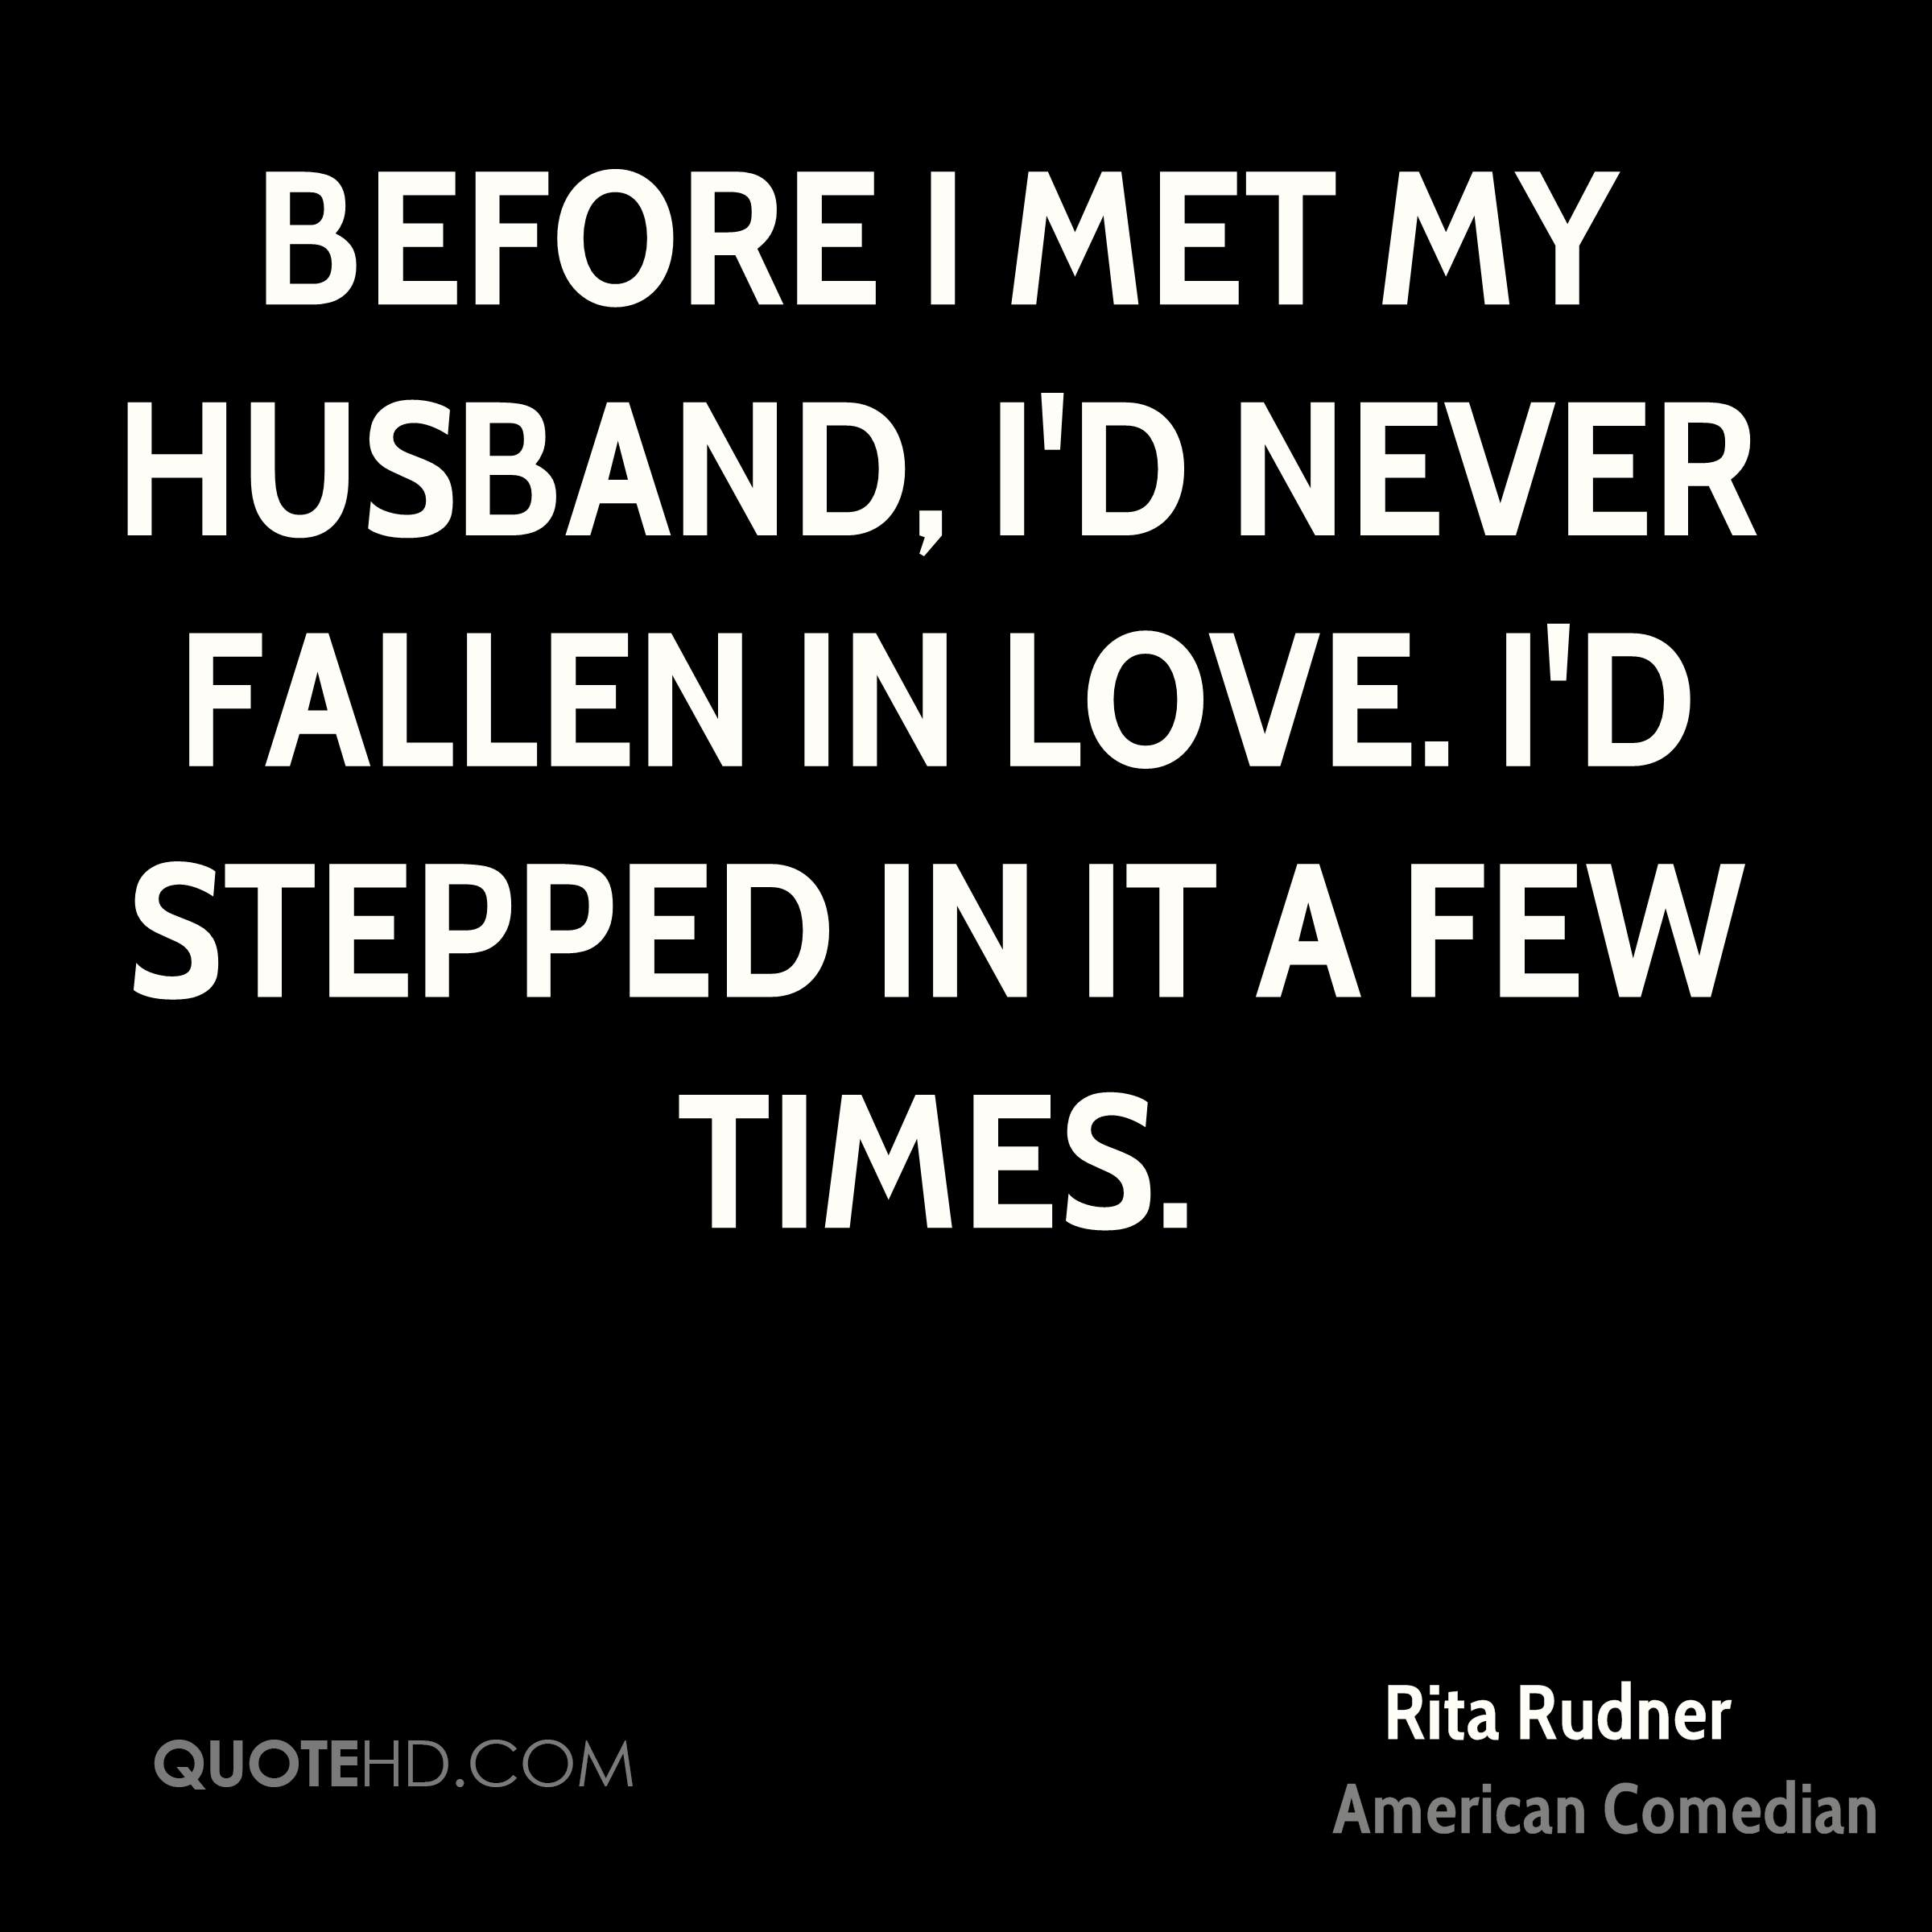 Before I met my husband, I'd never fallen in love. I'd stepped in it a few times.